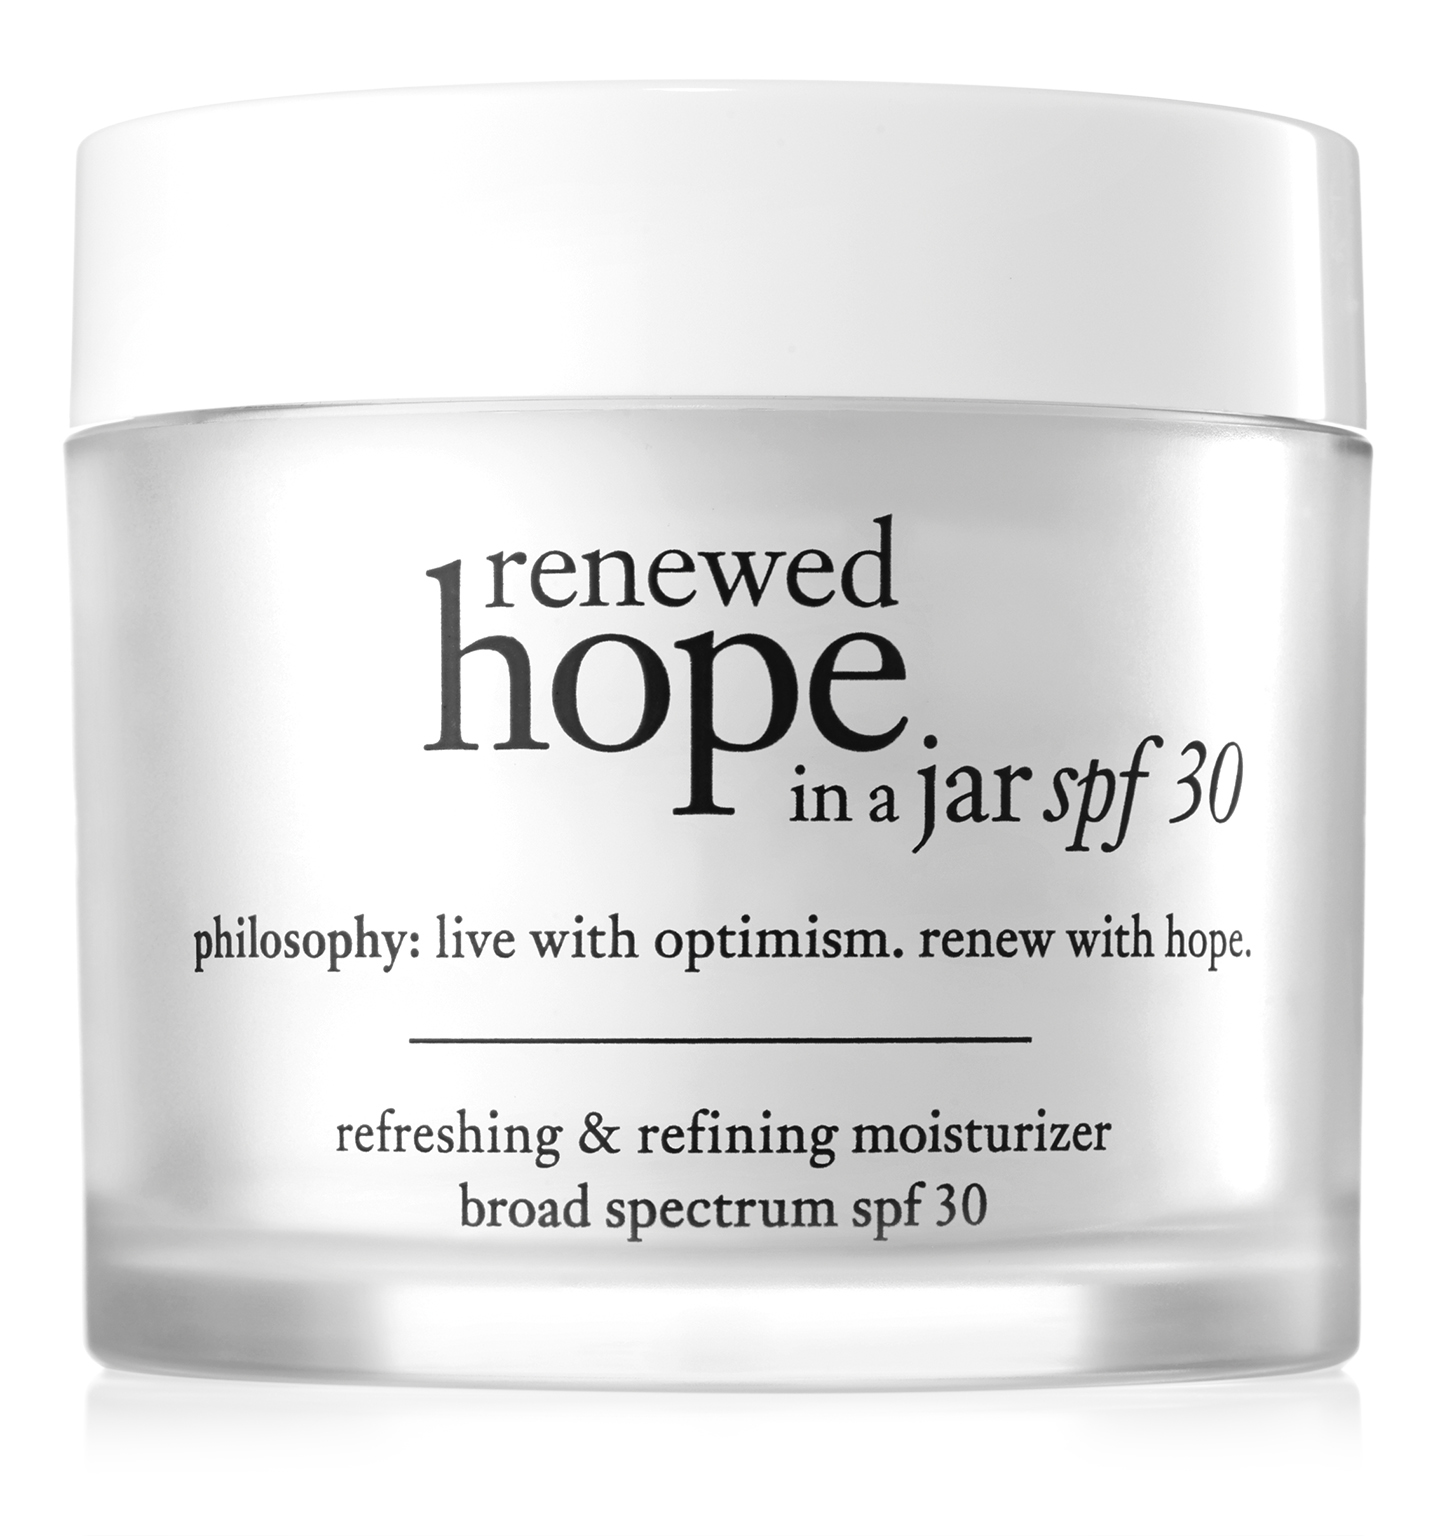 philosophy, renewed hope in a jar spf 30